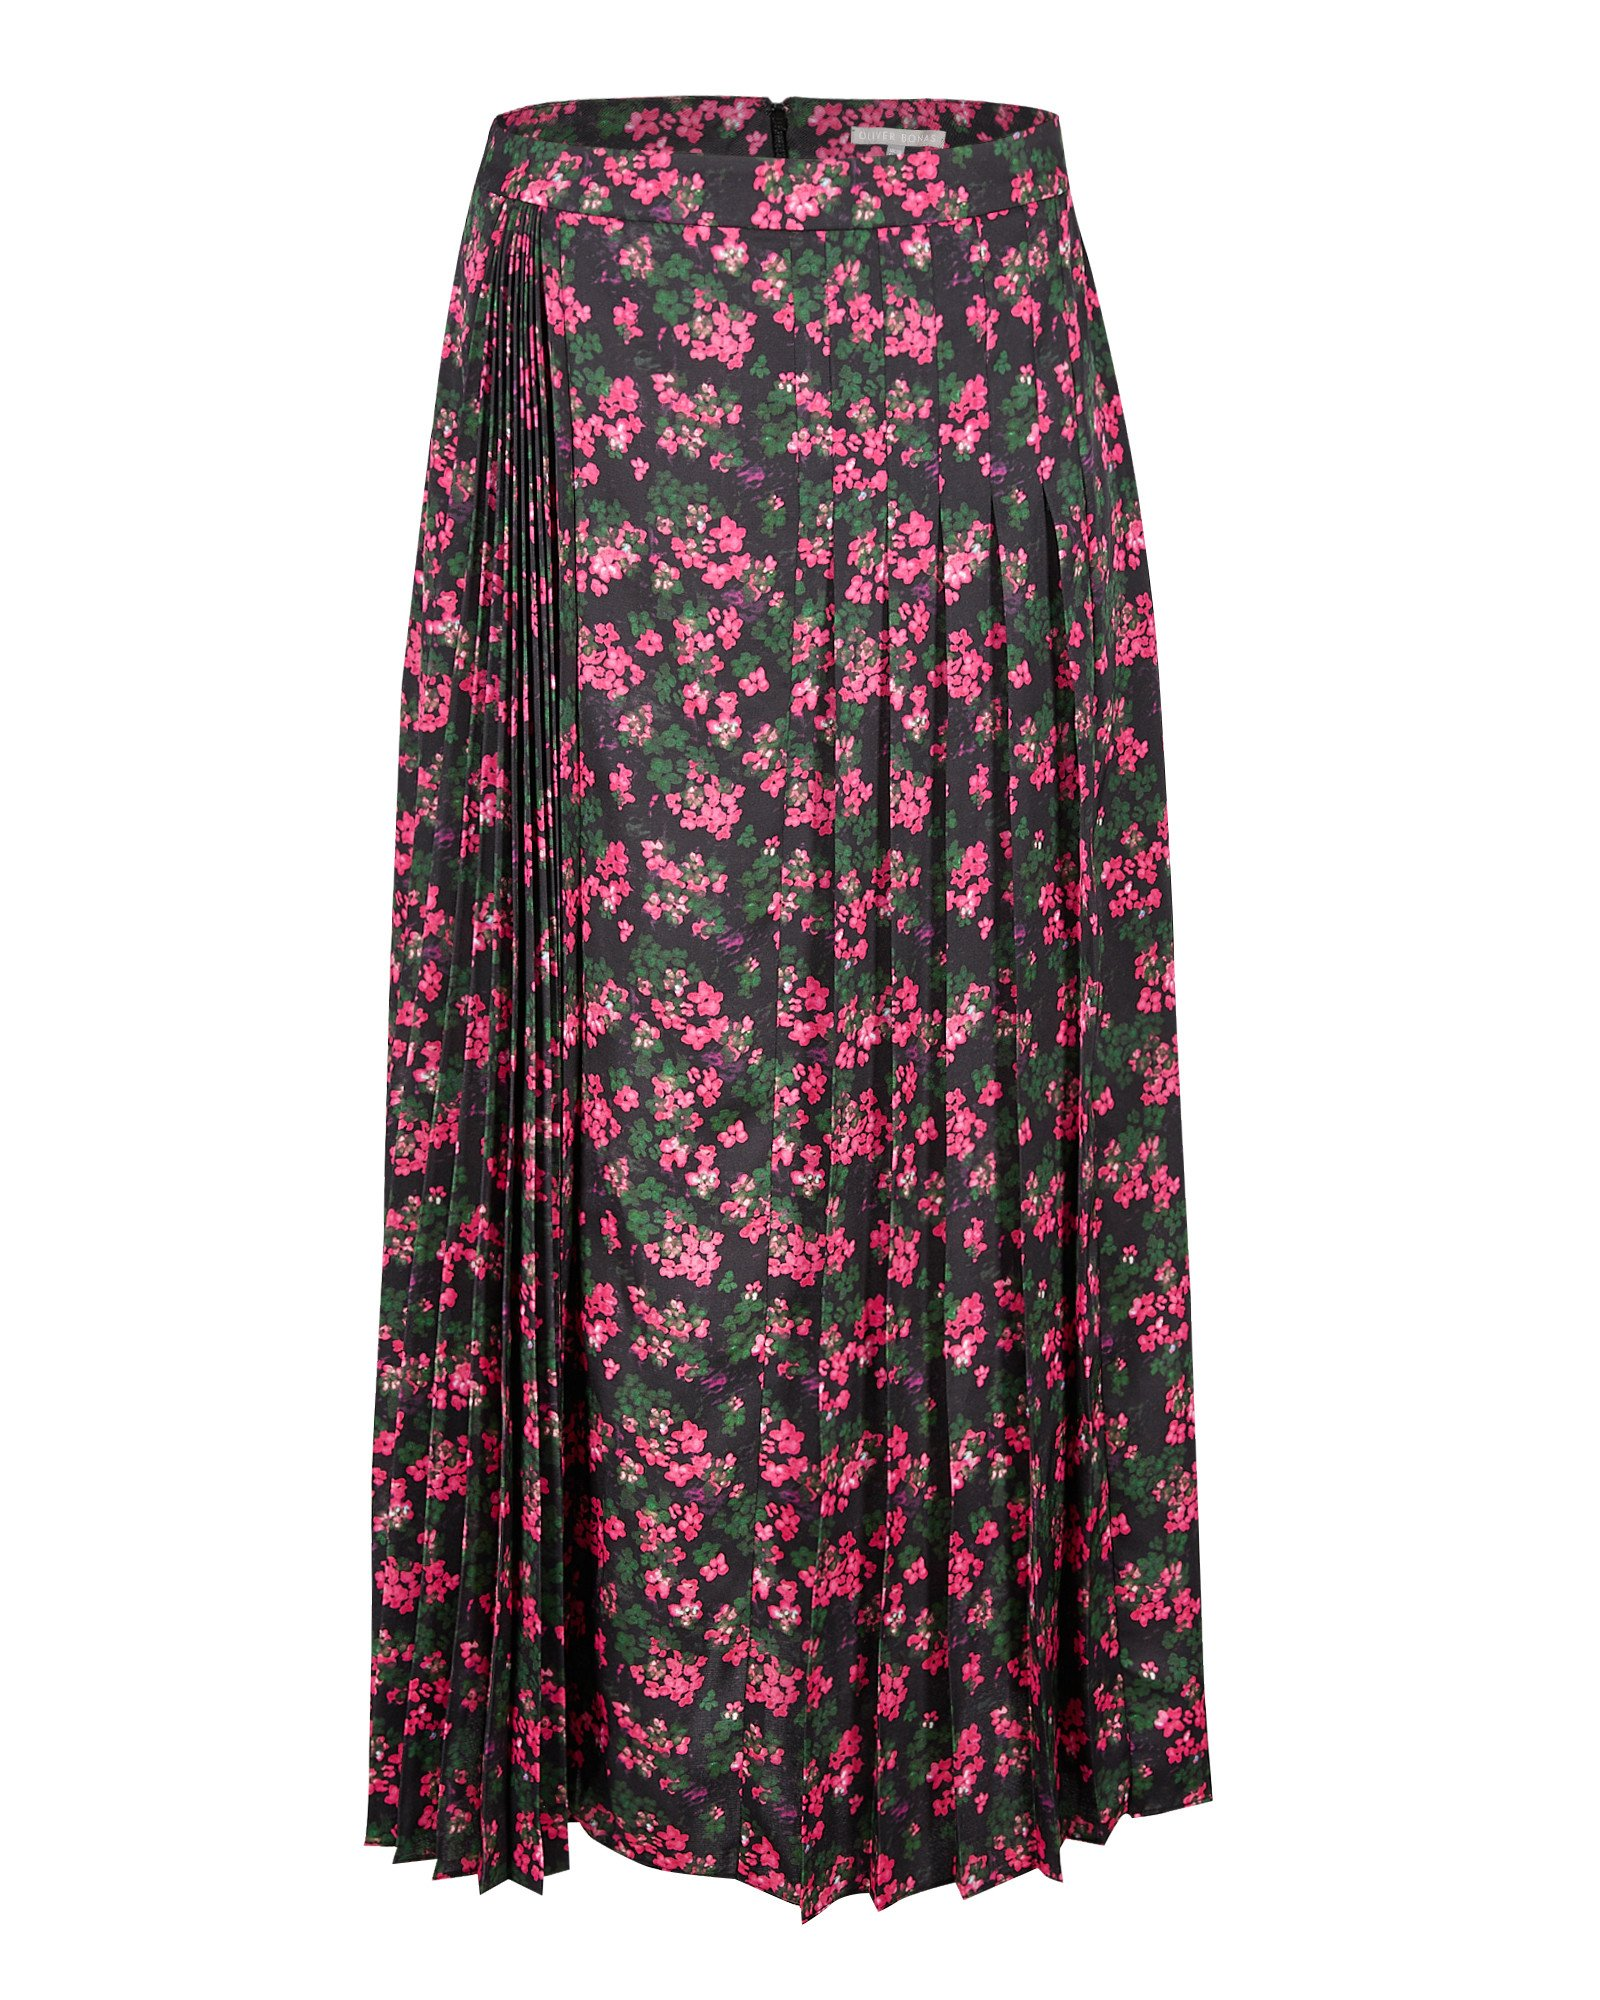 Ditsy Floral Print Pink & Black Pleated Midi Skirt